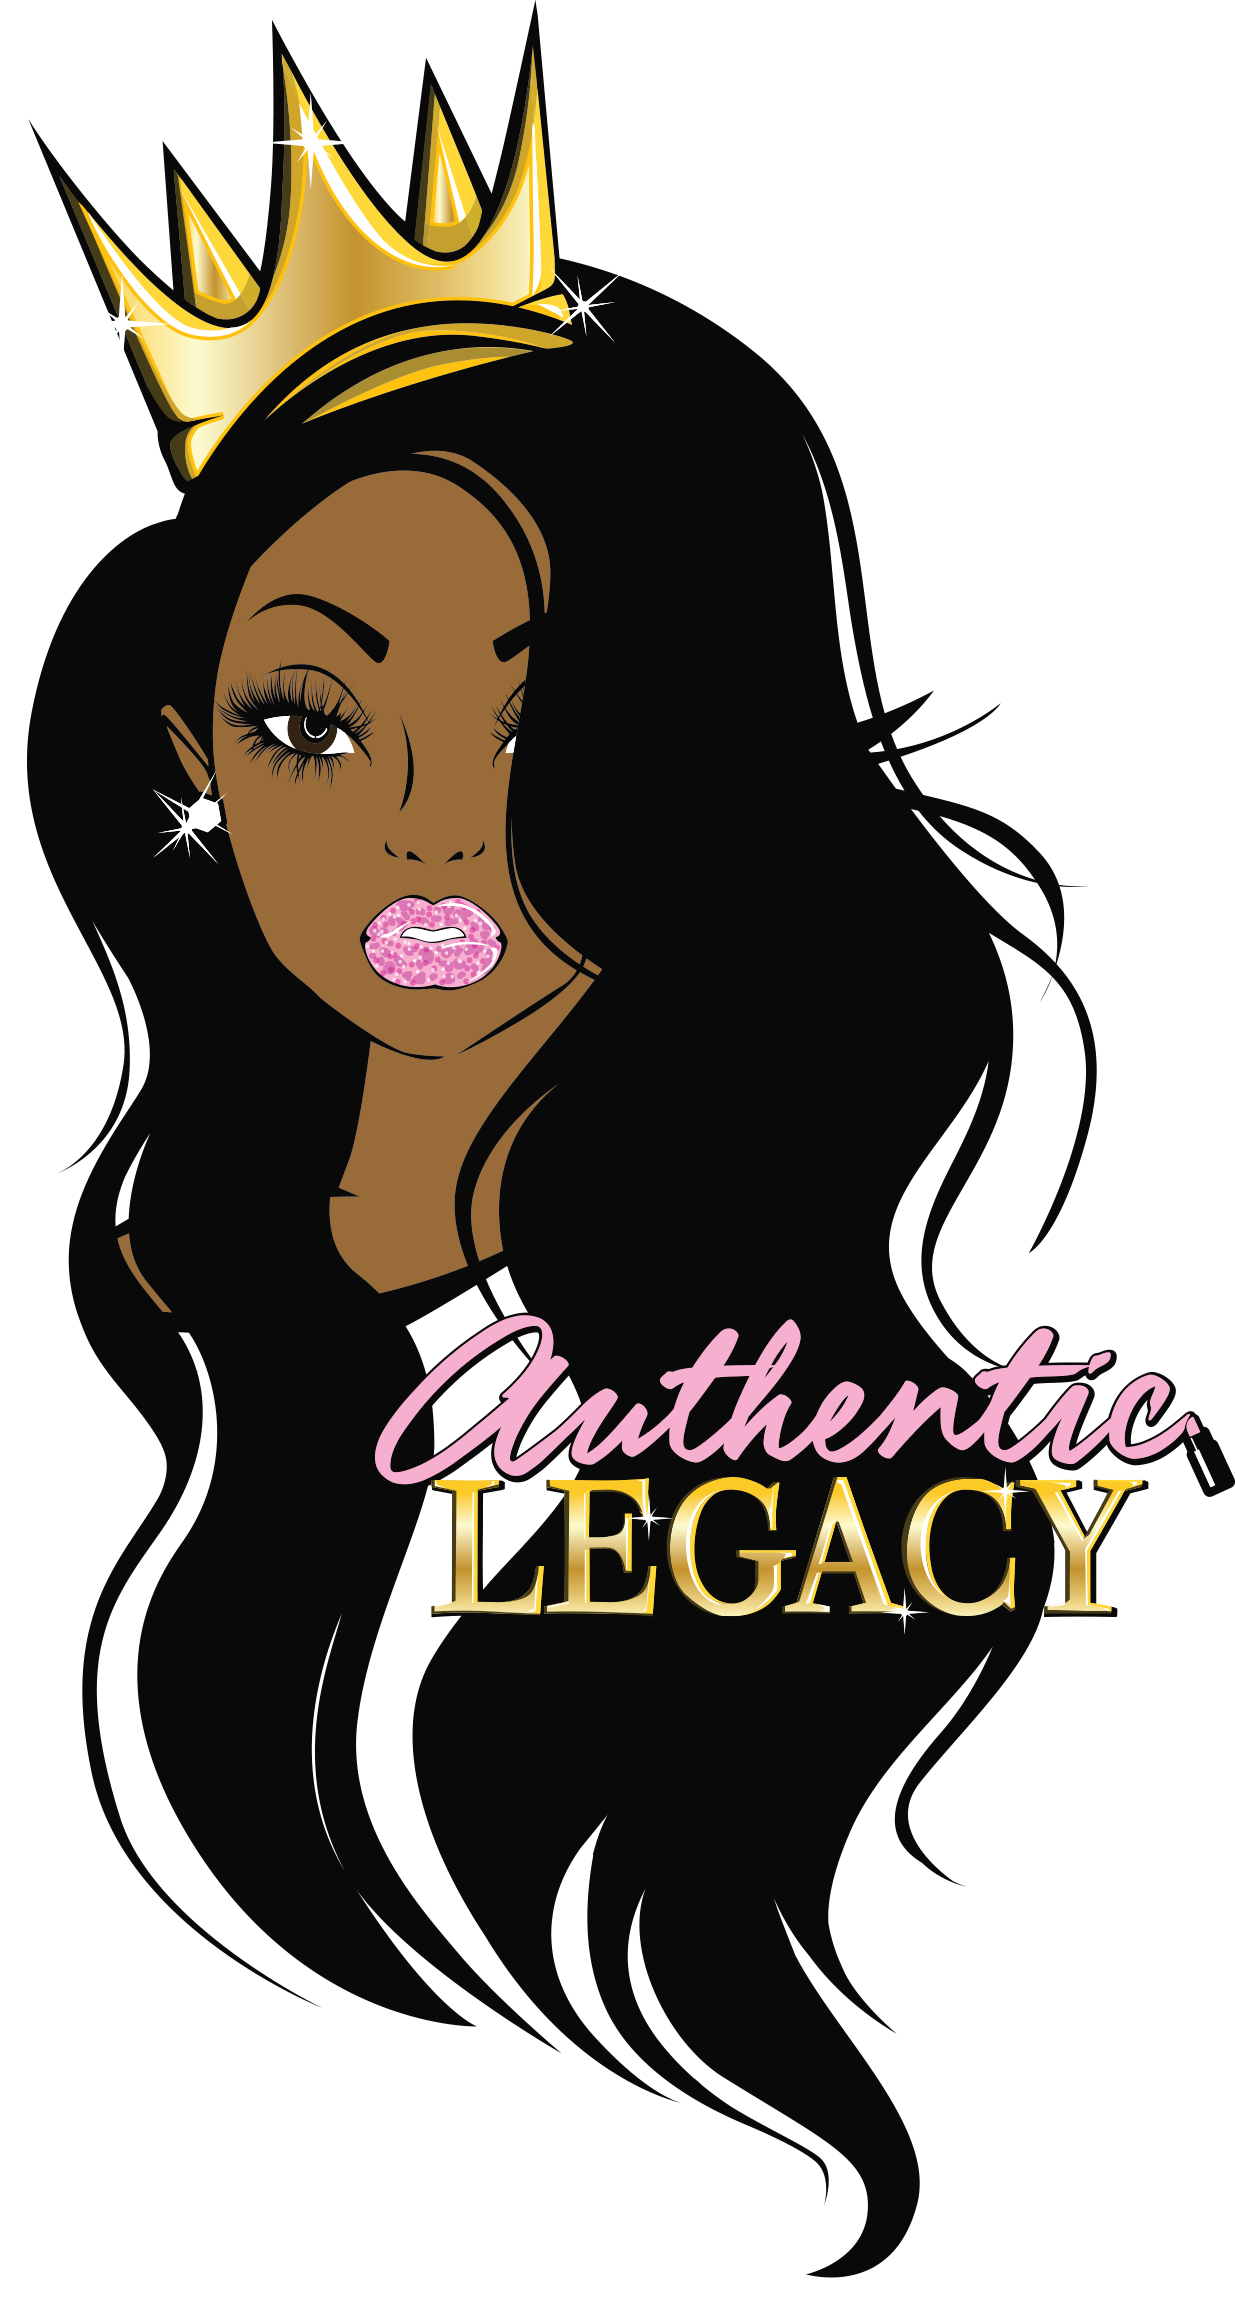 Cosmetology clipart hair weave, Cosmetology hair weave Transparent.